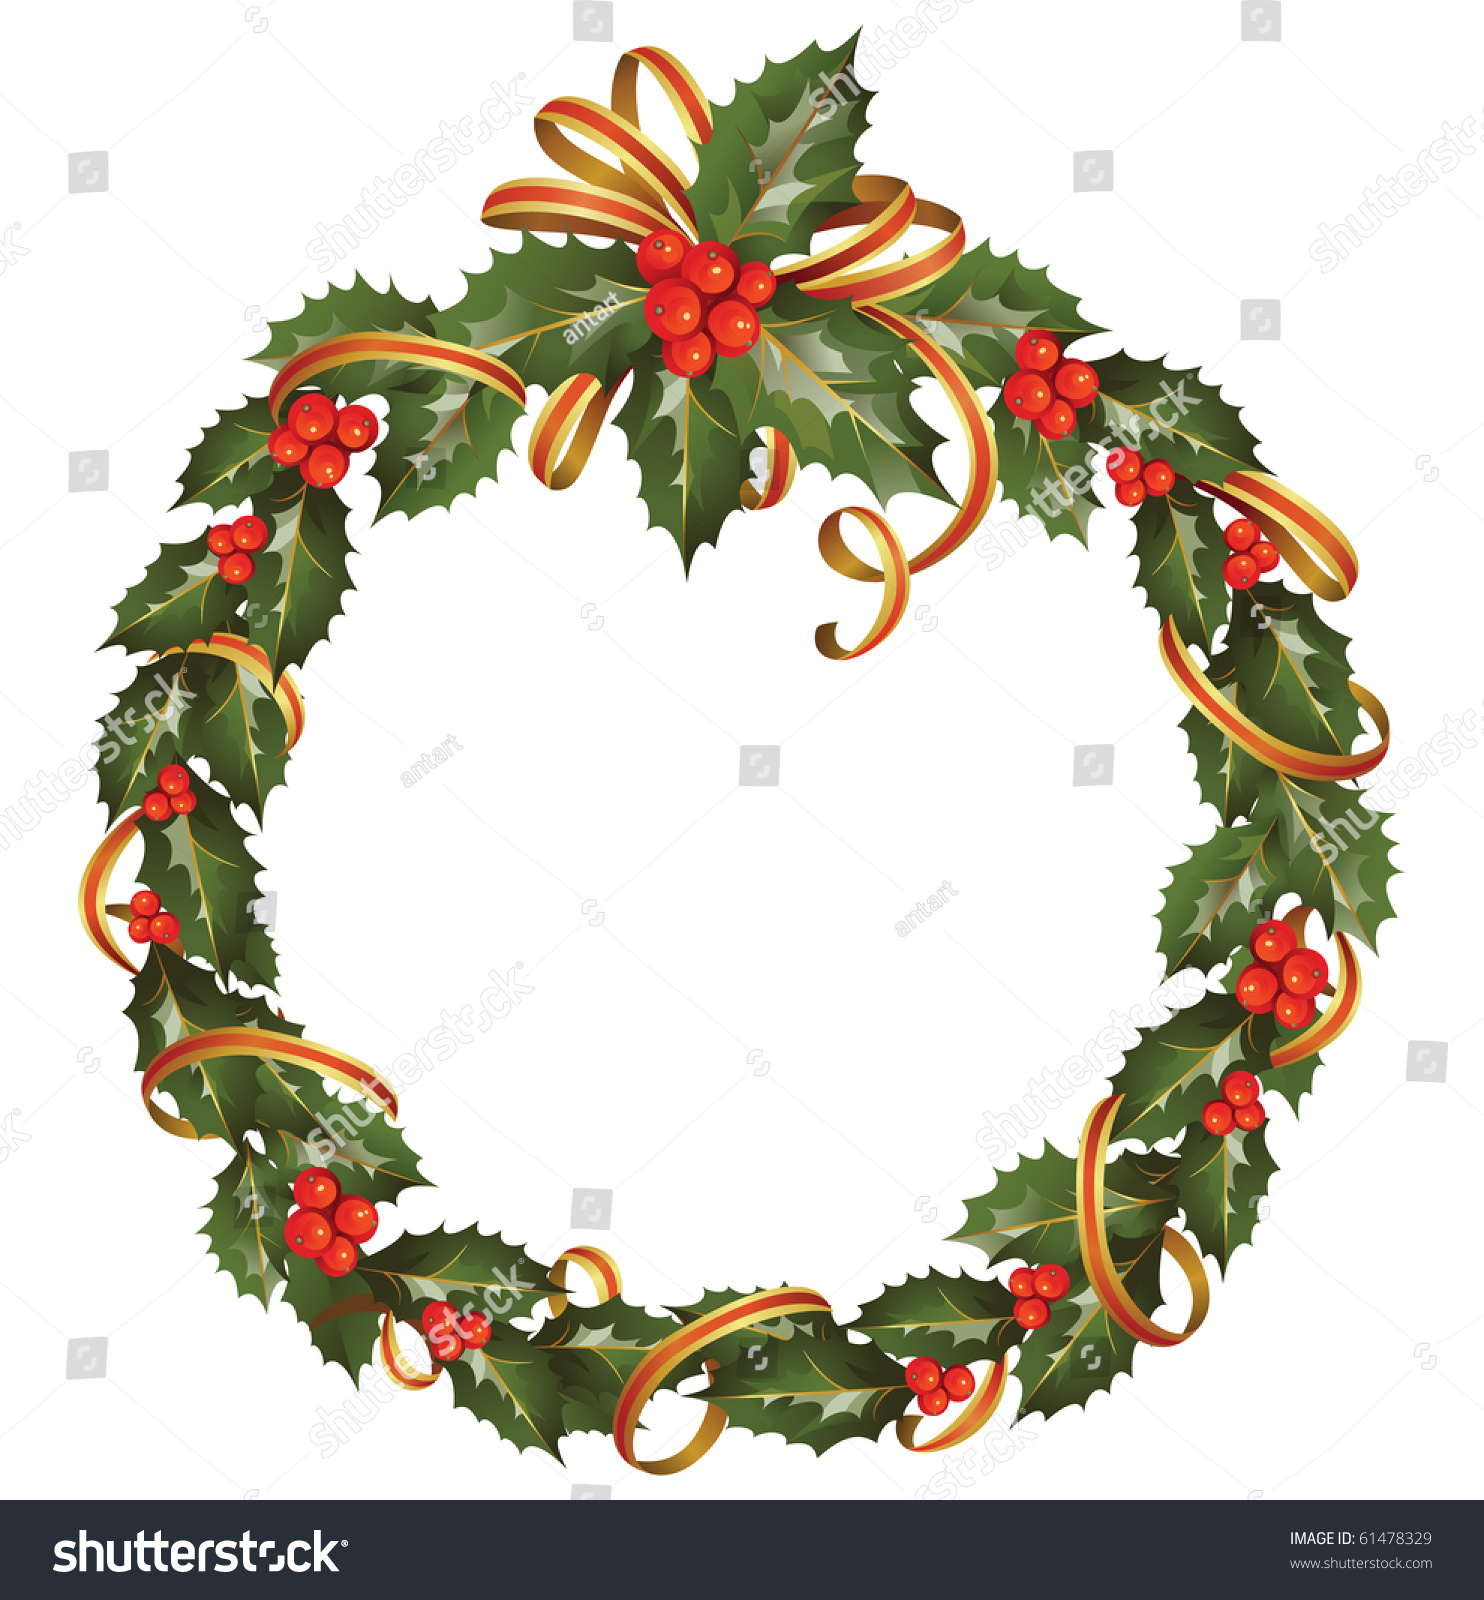 Circle Christmas Holly Branch Stock Vector 61478329 - Shutterstock